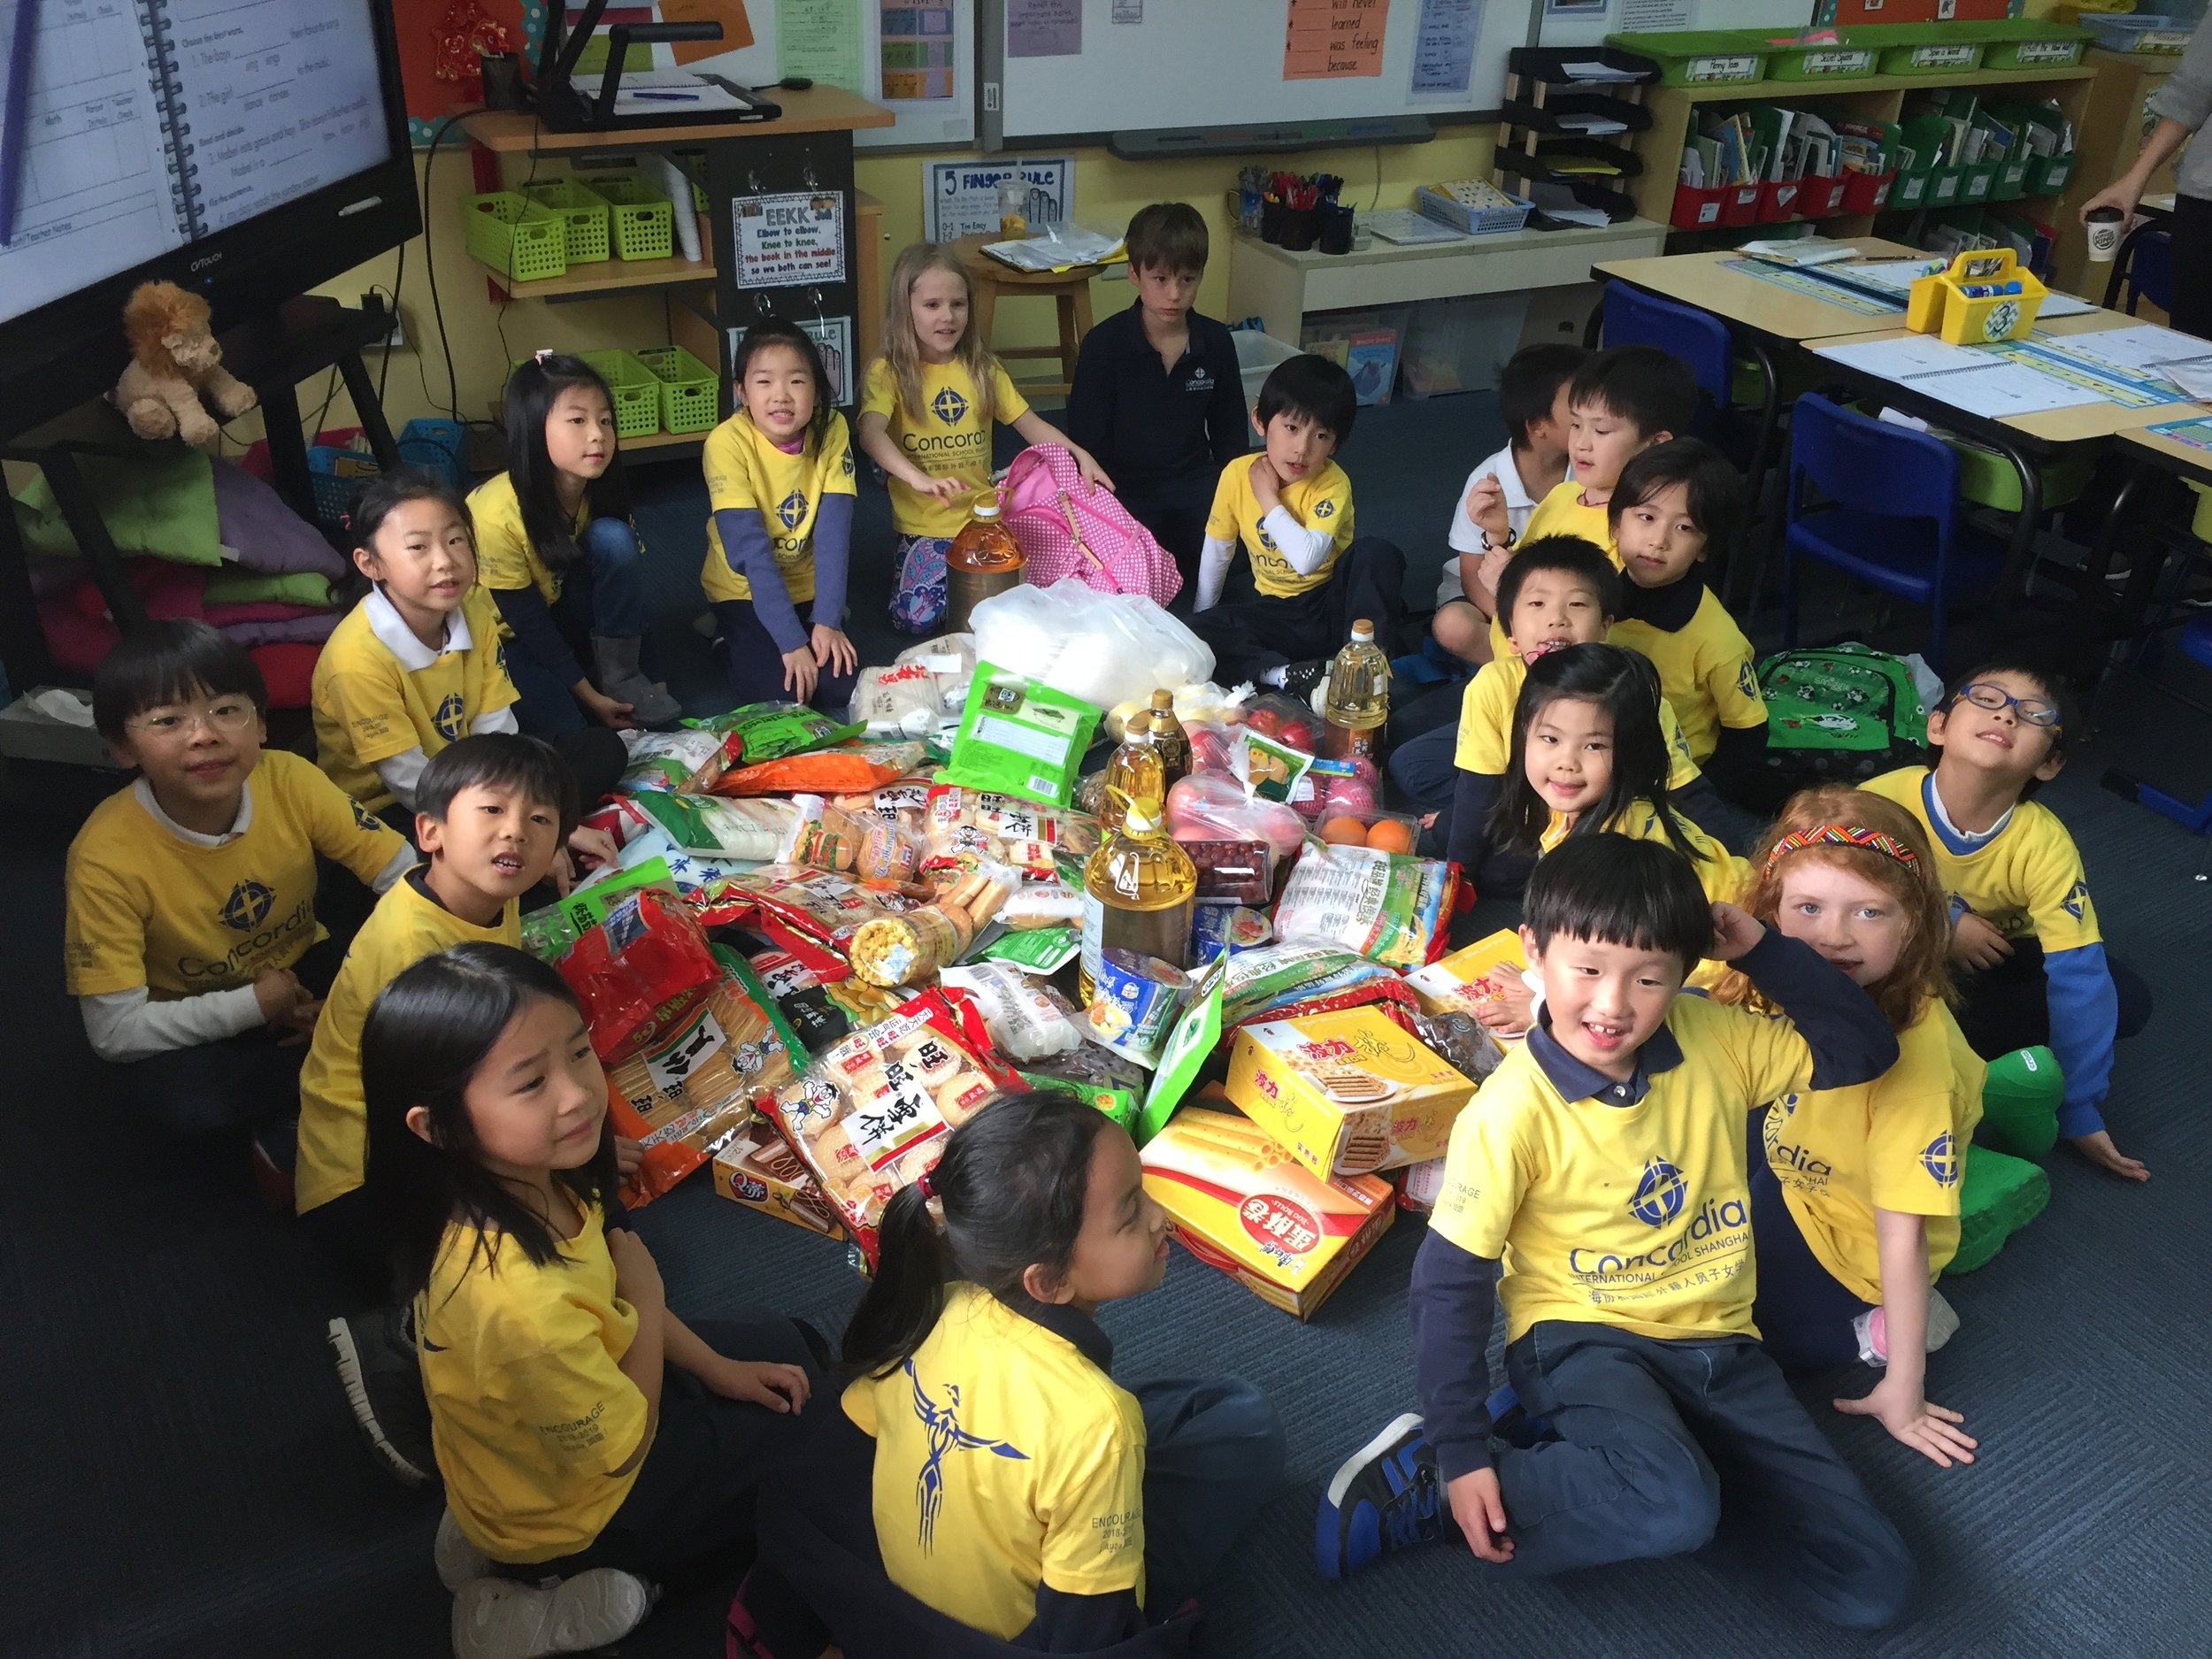 Grade 1 students after their trip to Carrefour, assembling items for Baobei, The Will Foundation and Shining Star.